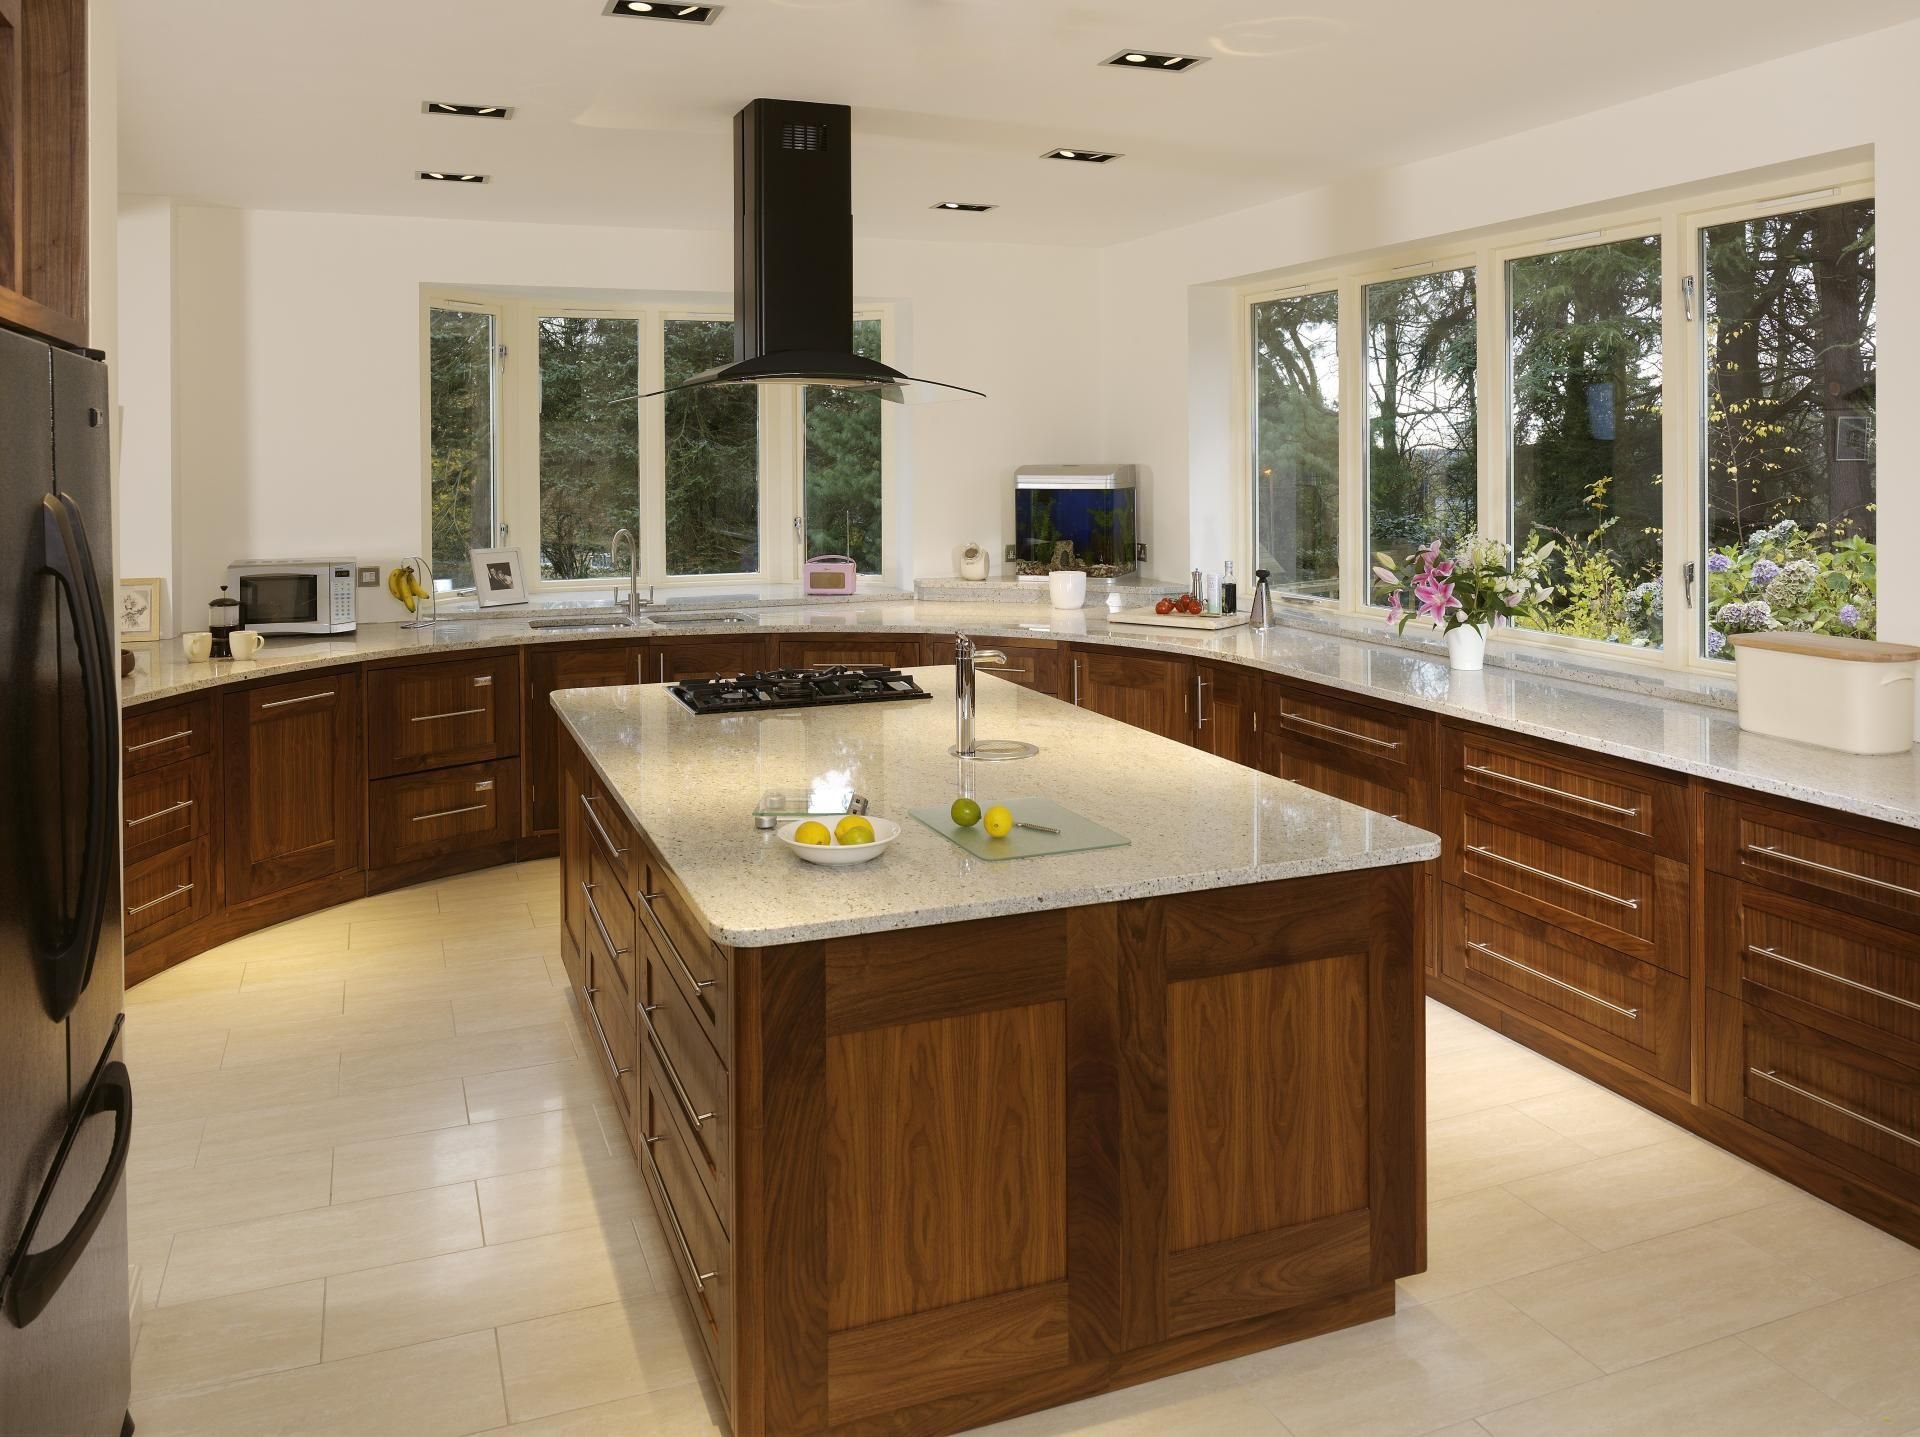 walnut kitchen with kashmere white granite worktops, solid walnut